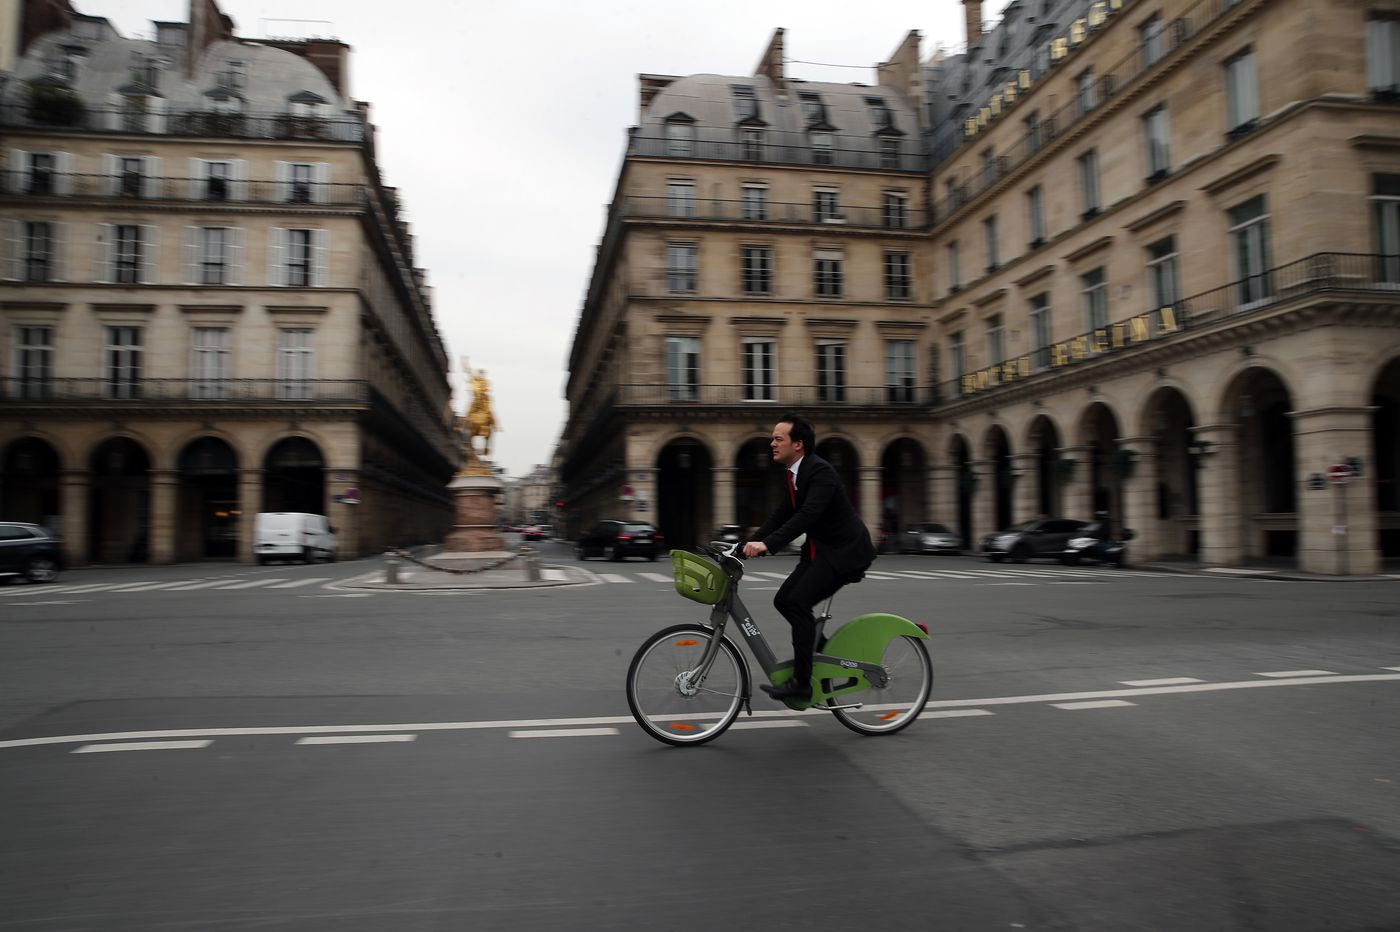 Bicycle sales surge as Americans seek to avoid mass transit and get exercise